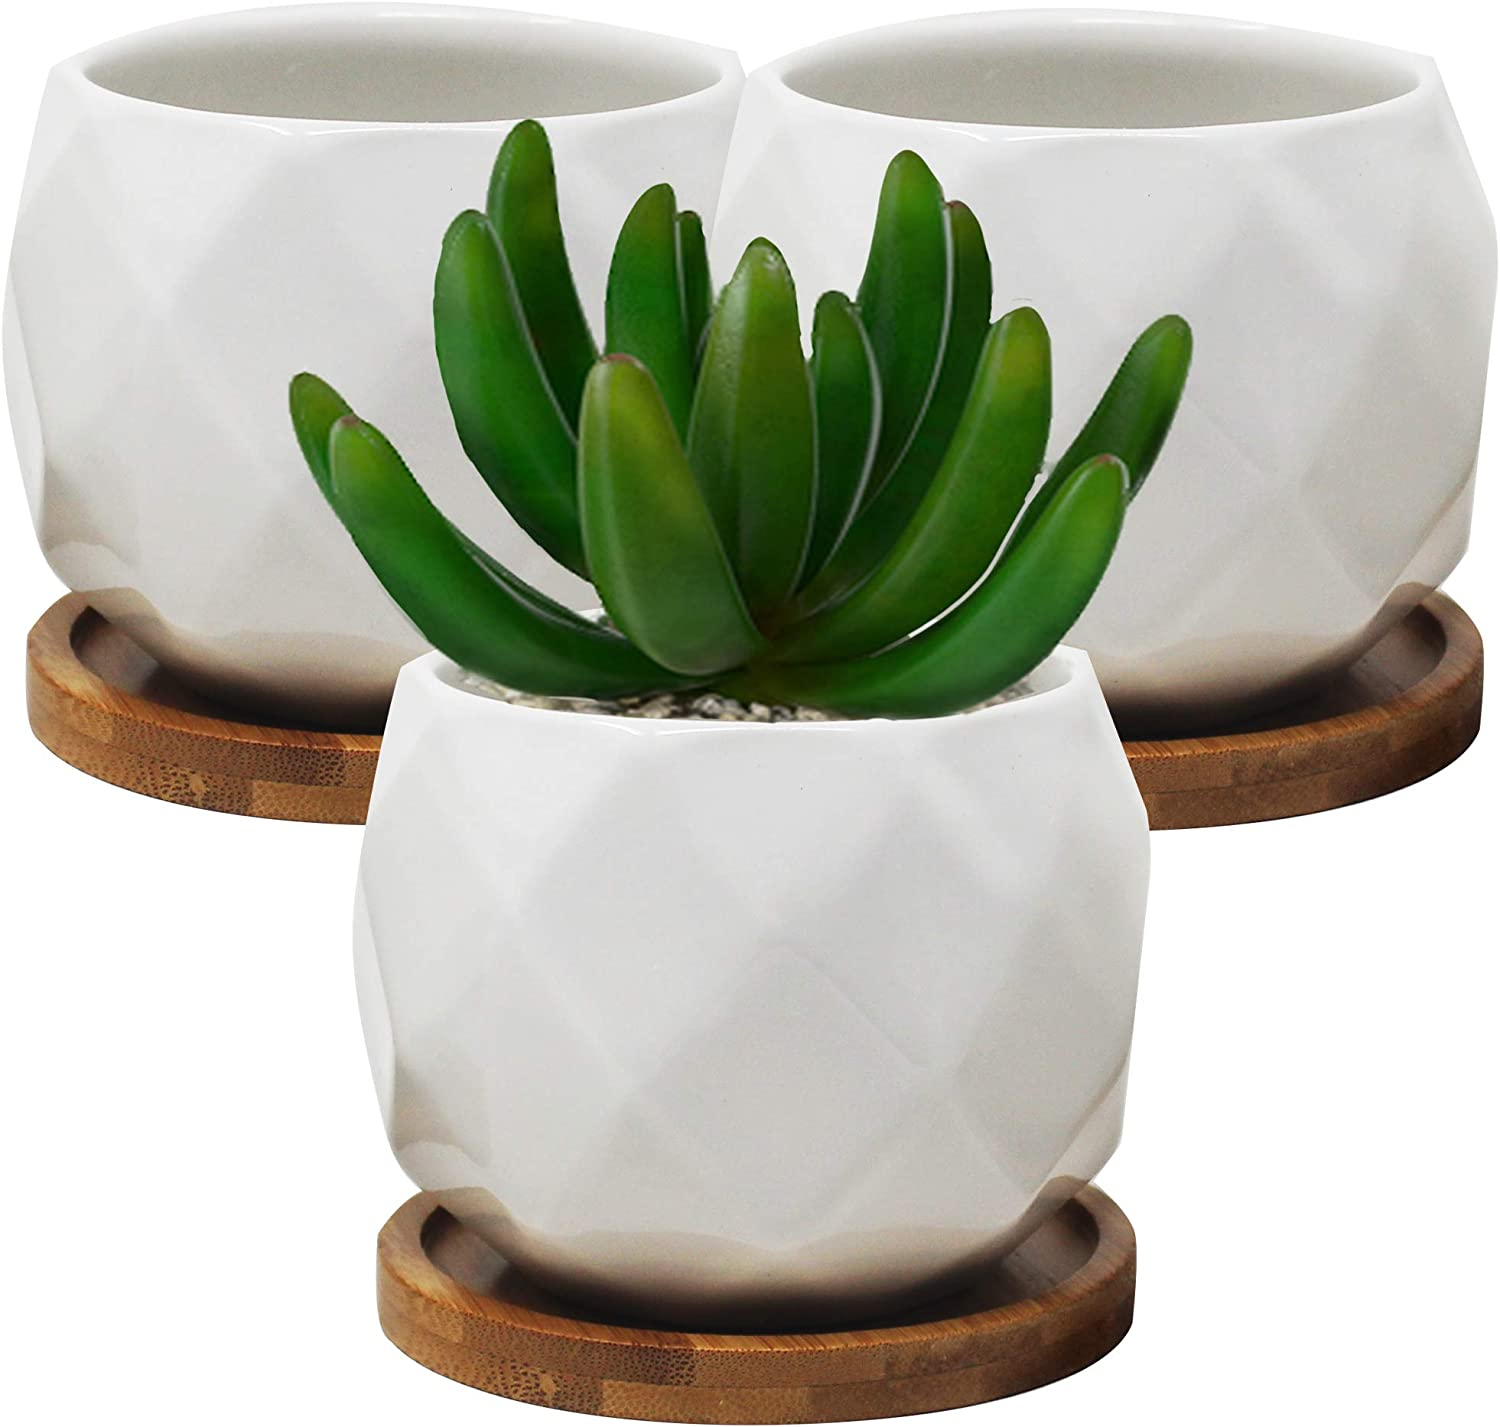 Ceramic Plant Pots with Drainage Holes and Saucers ~ Flower Pots Indoor with Saucer ~ 3 Inch Succulent Pots with Bamboo Tray & Drainage Hole ~ Indoor & Outdoor Home Decor ~ Pack of 3 (Diamond)